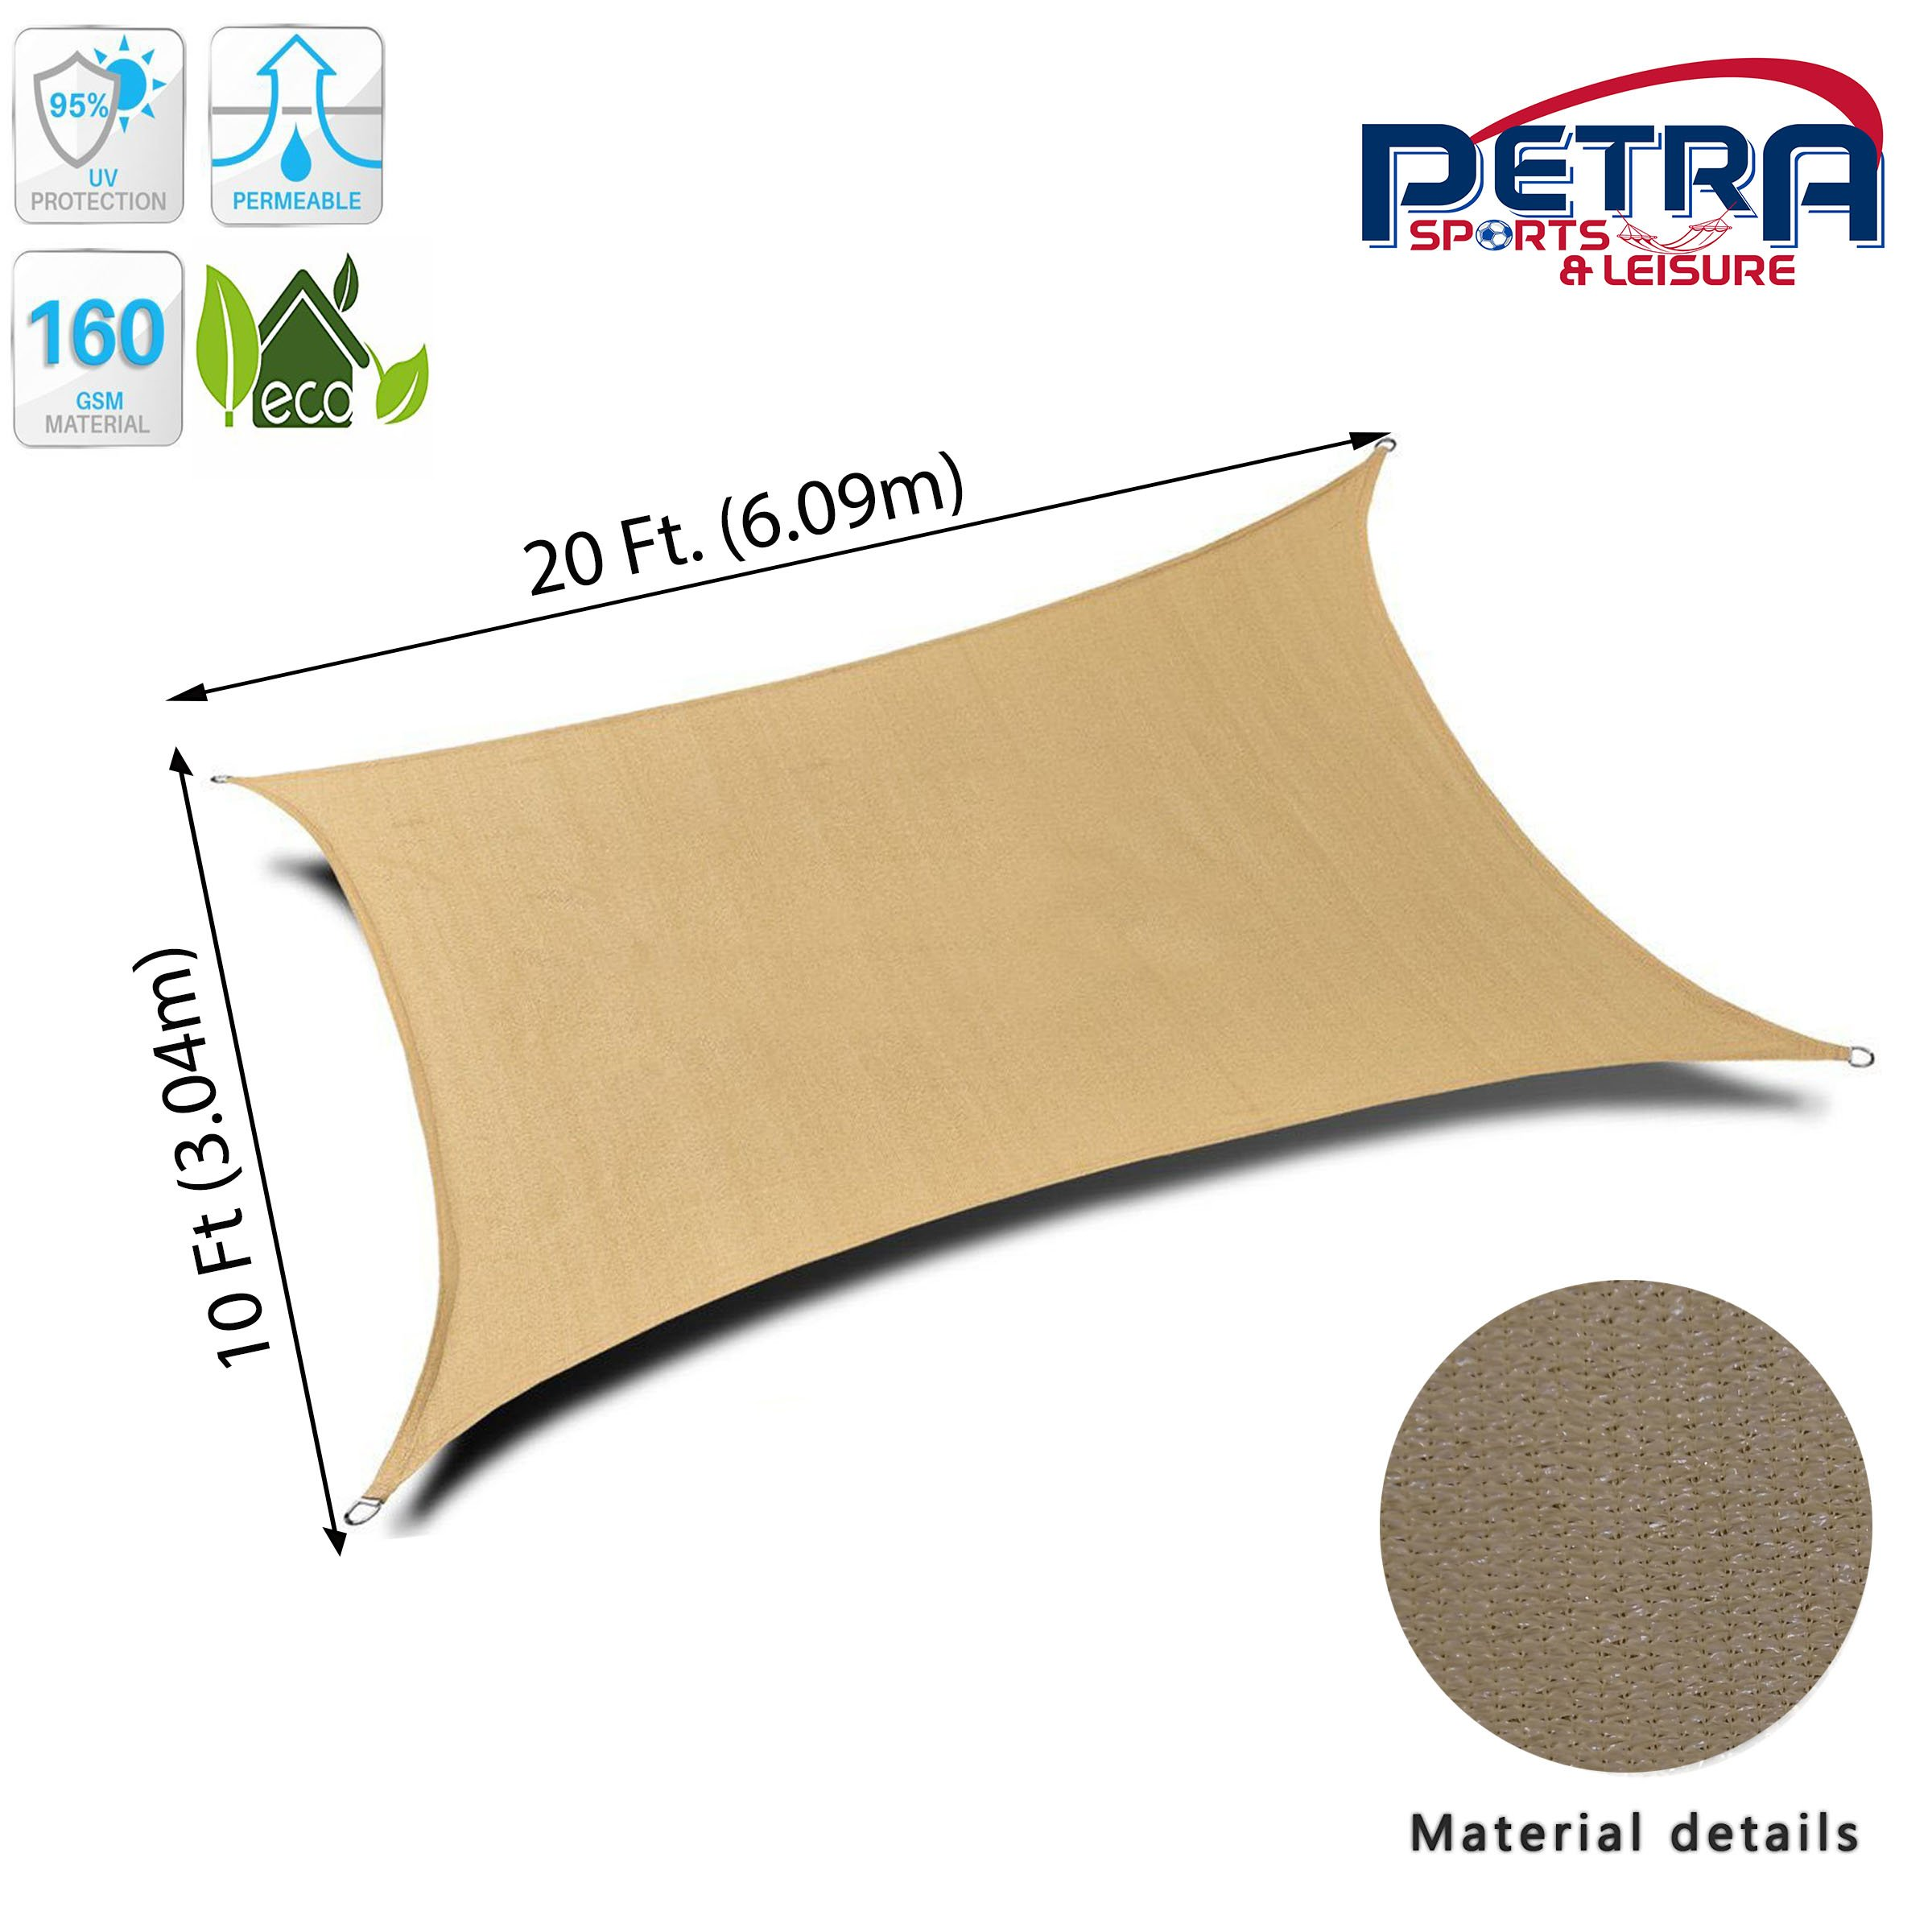 Petra's 20 Ft. X 10 Ft. Rectangle Sun Sail Shade. Durable Woven Outdoor Patio Fabric w/Up to 90% UV Protection. 20x10 Foot. (Desert Sand)